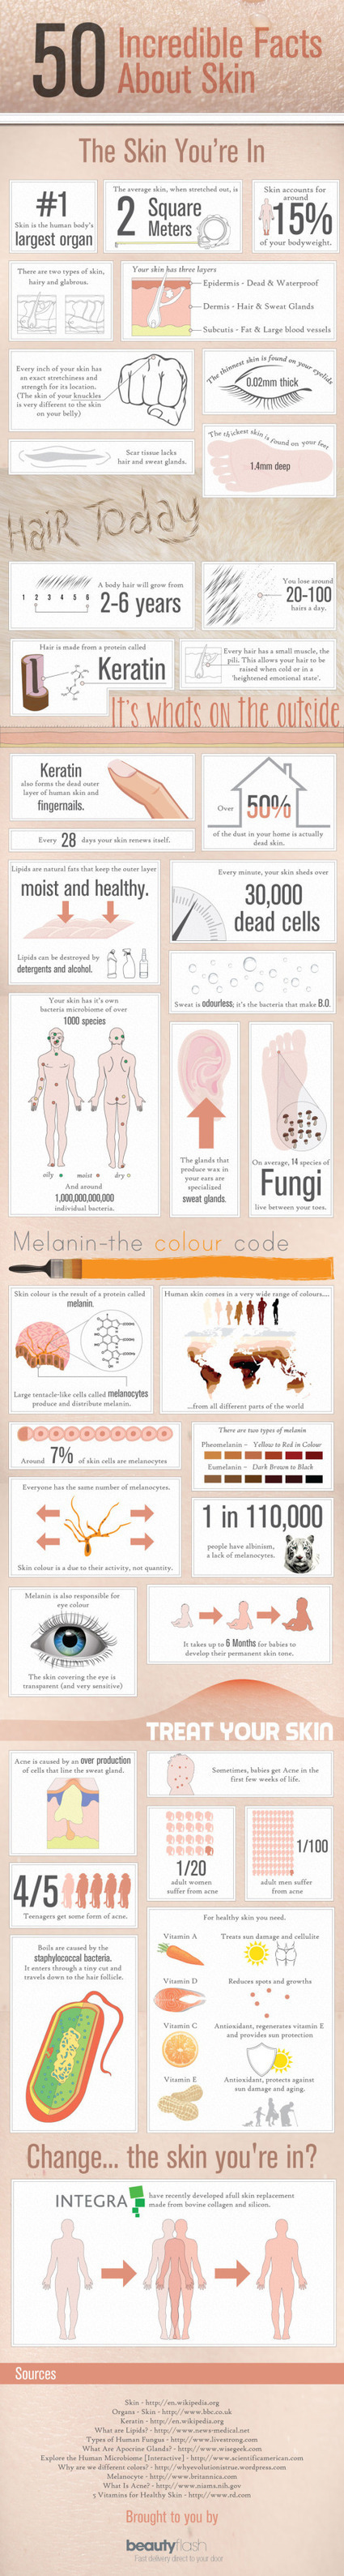 50 Incredible Facts About Skin - Blog About Infographics and Data Visualization - Cool Infographics | Infographics ideas for Education | Scoop.it